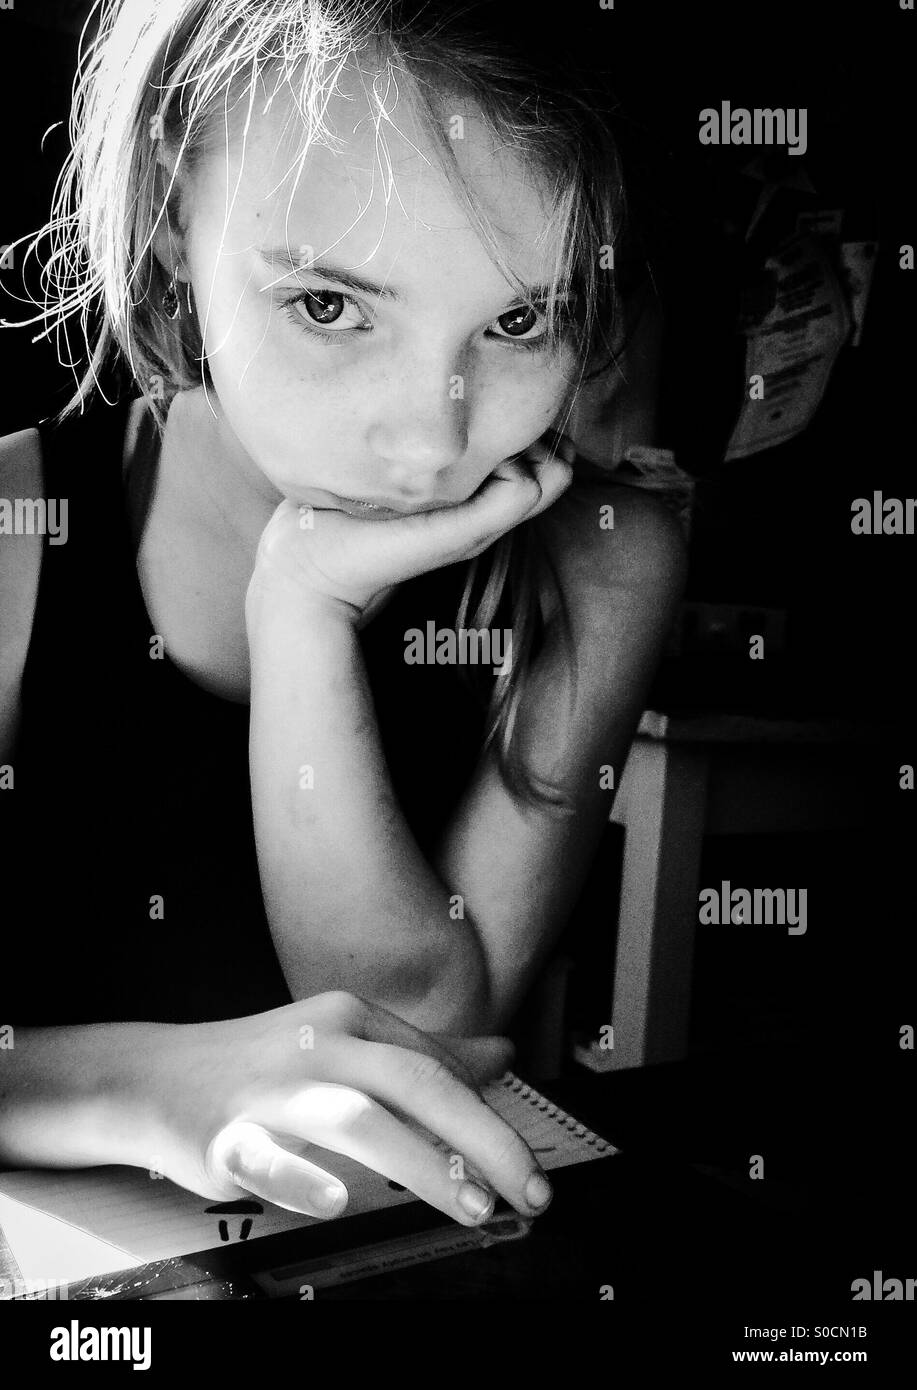 Girl with ipad and notebook - Stock Image